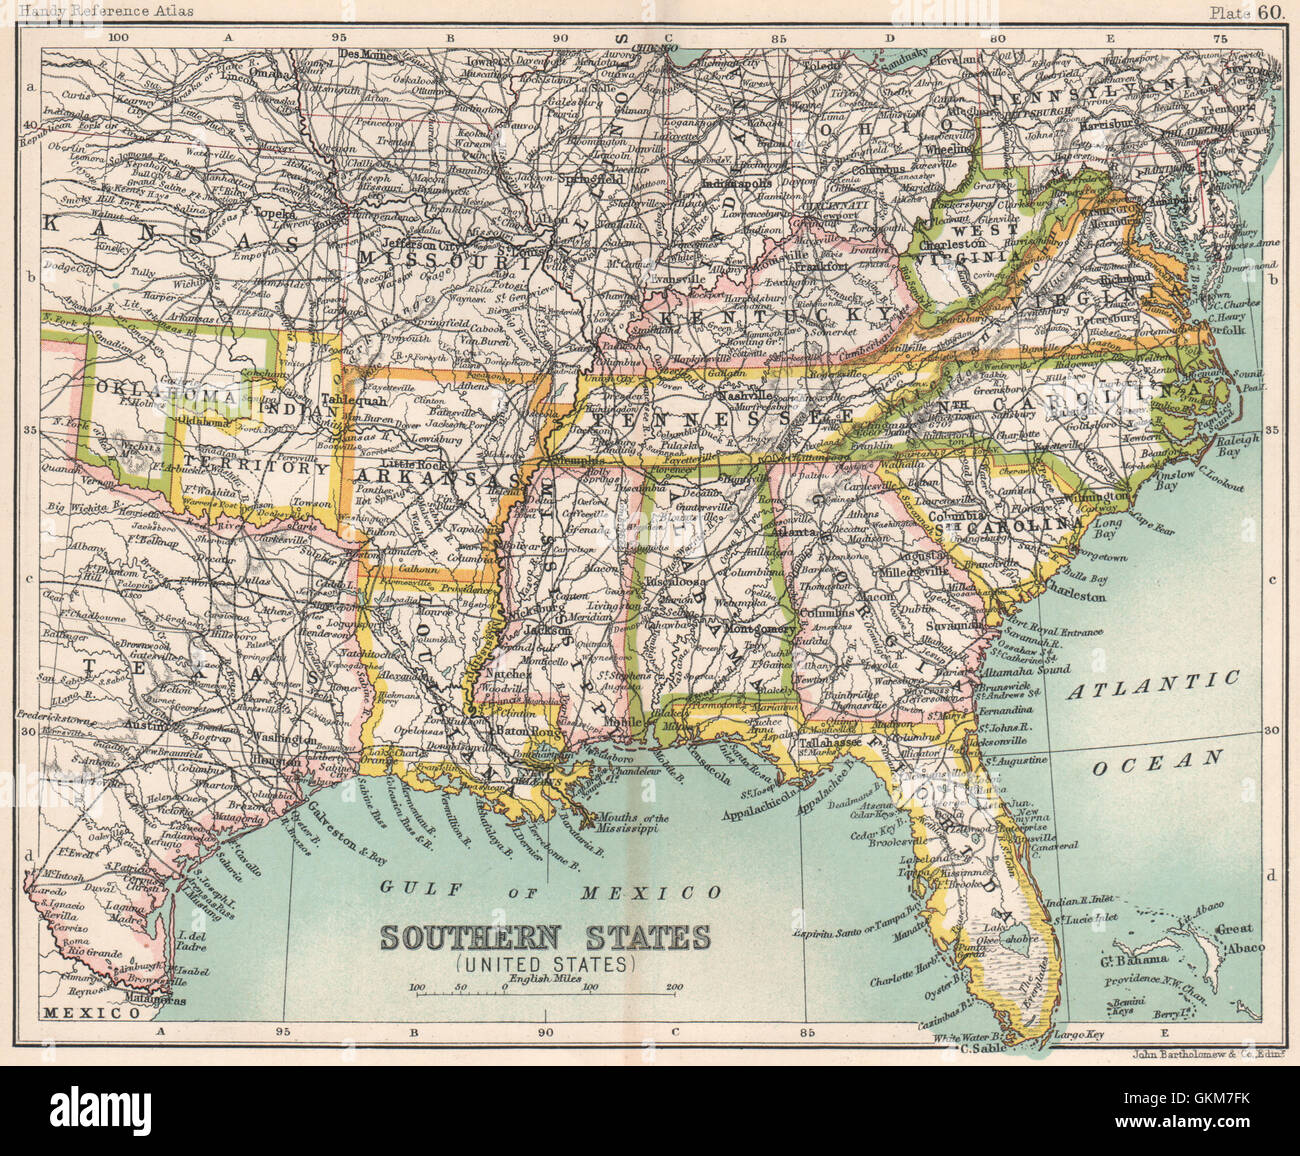 Image of: Southern States United States Deep South Indian Territory Usa Stock Photo Alamy